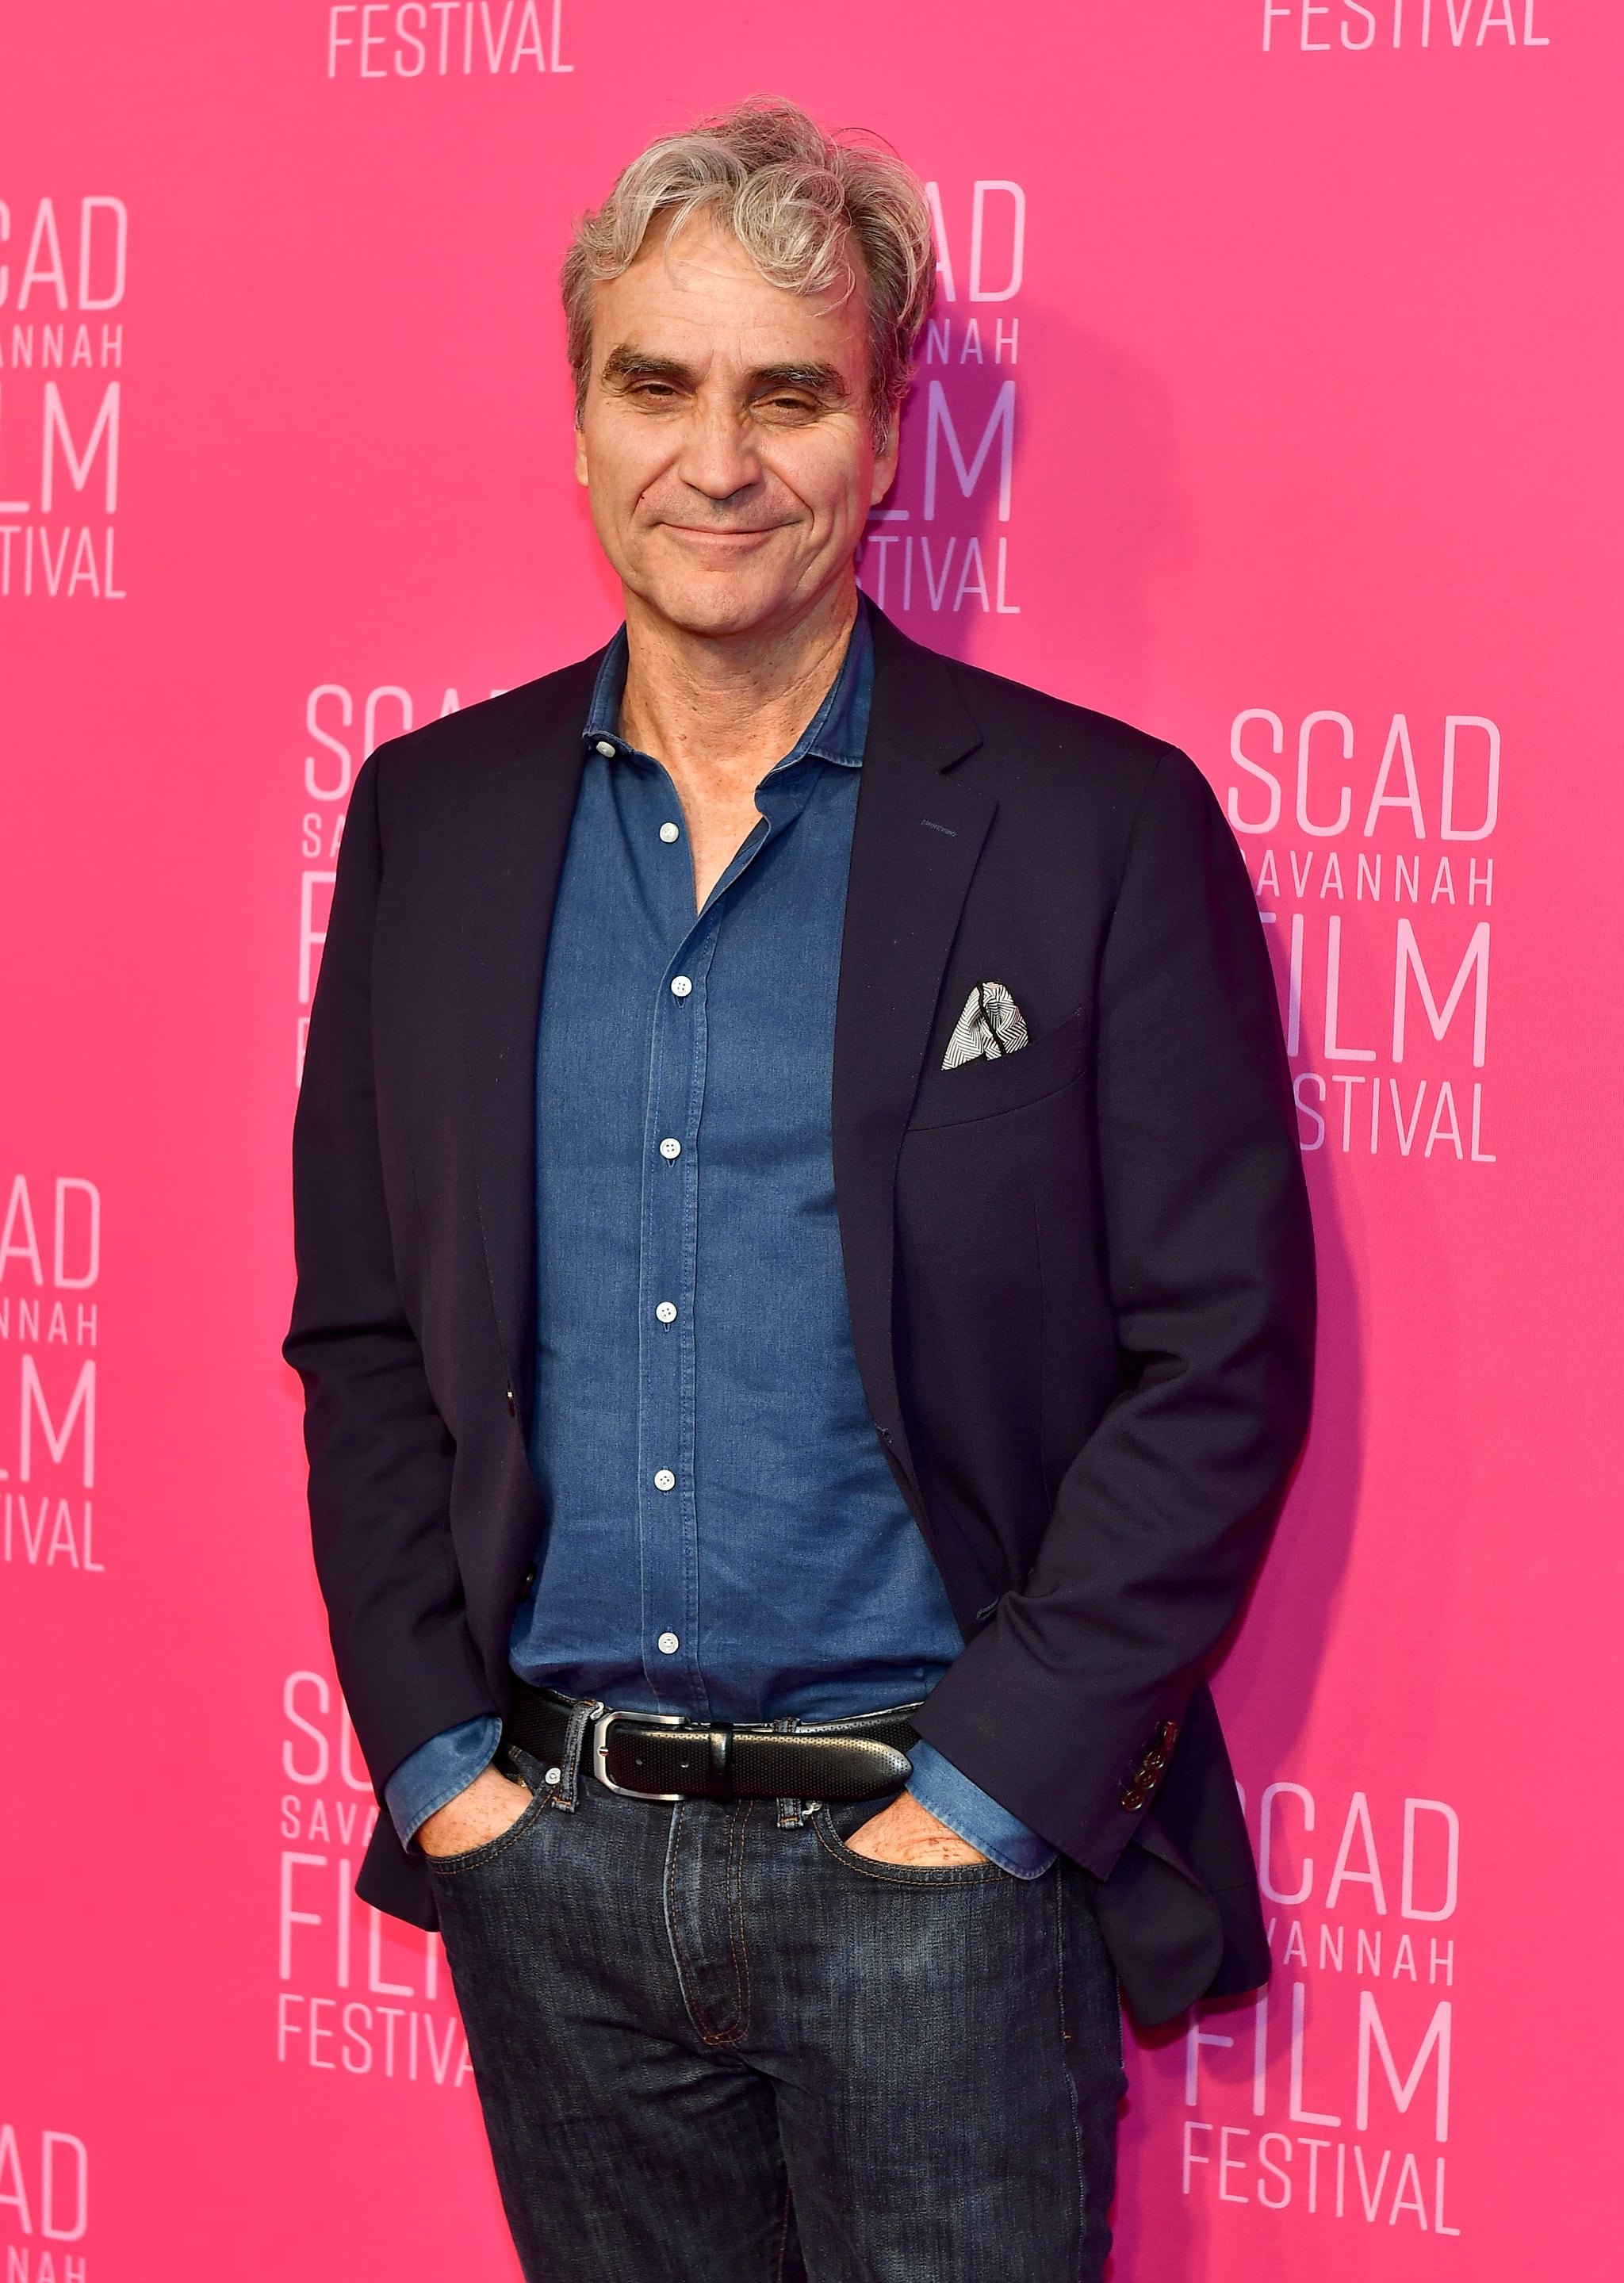 SAVANNAH, GEORGIA - NOVEMBER 02:  Journalist Tom Junod attends the closing night of the 22nd SCAD Savannah Film Festival on November 02, 2019 at Trustees Theatre in Savannah, Georgia (Photo by Paras Griffin/WireImage,)